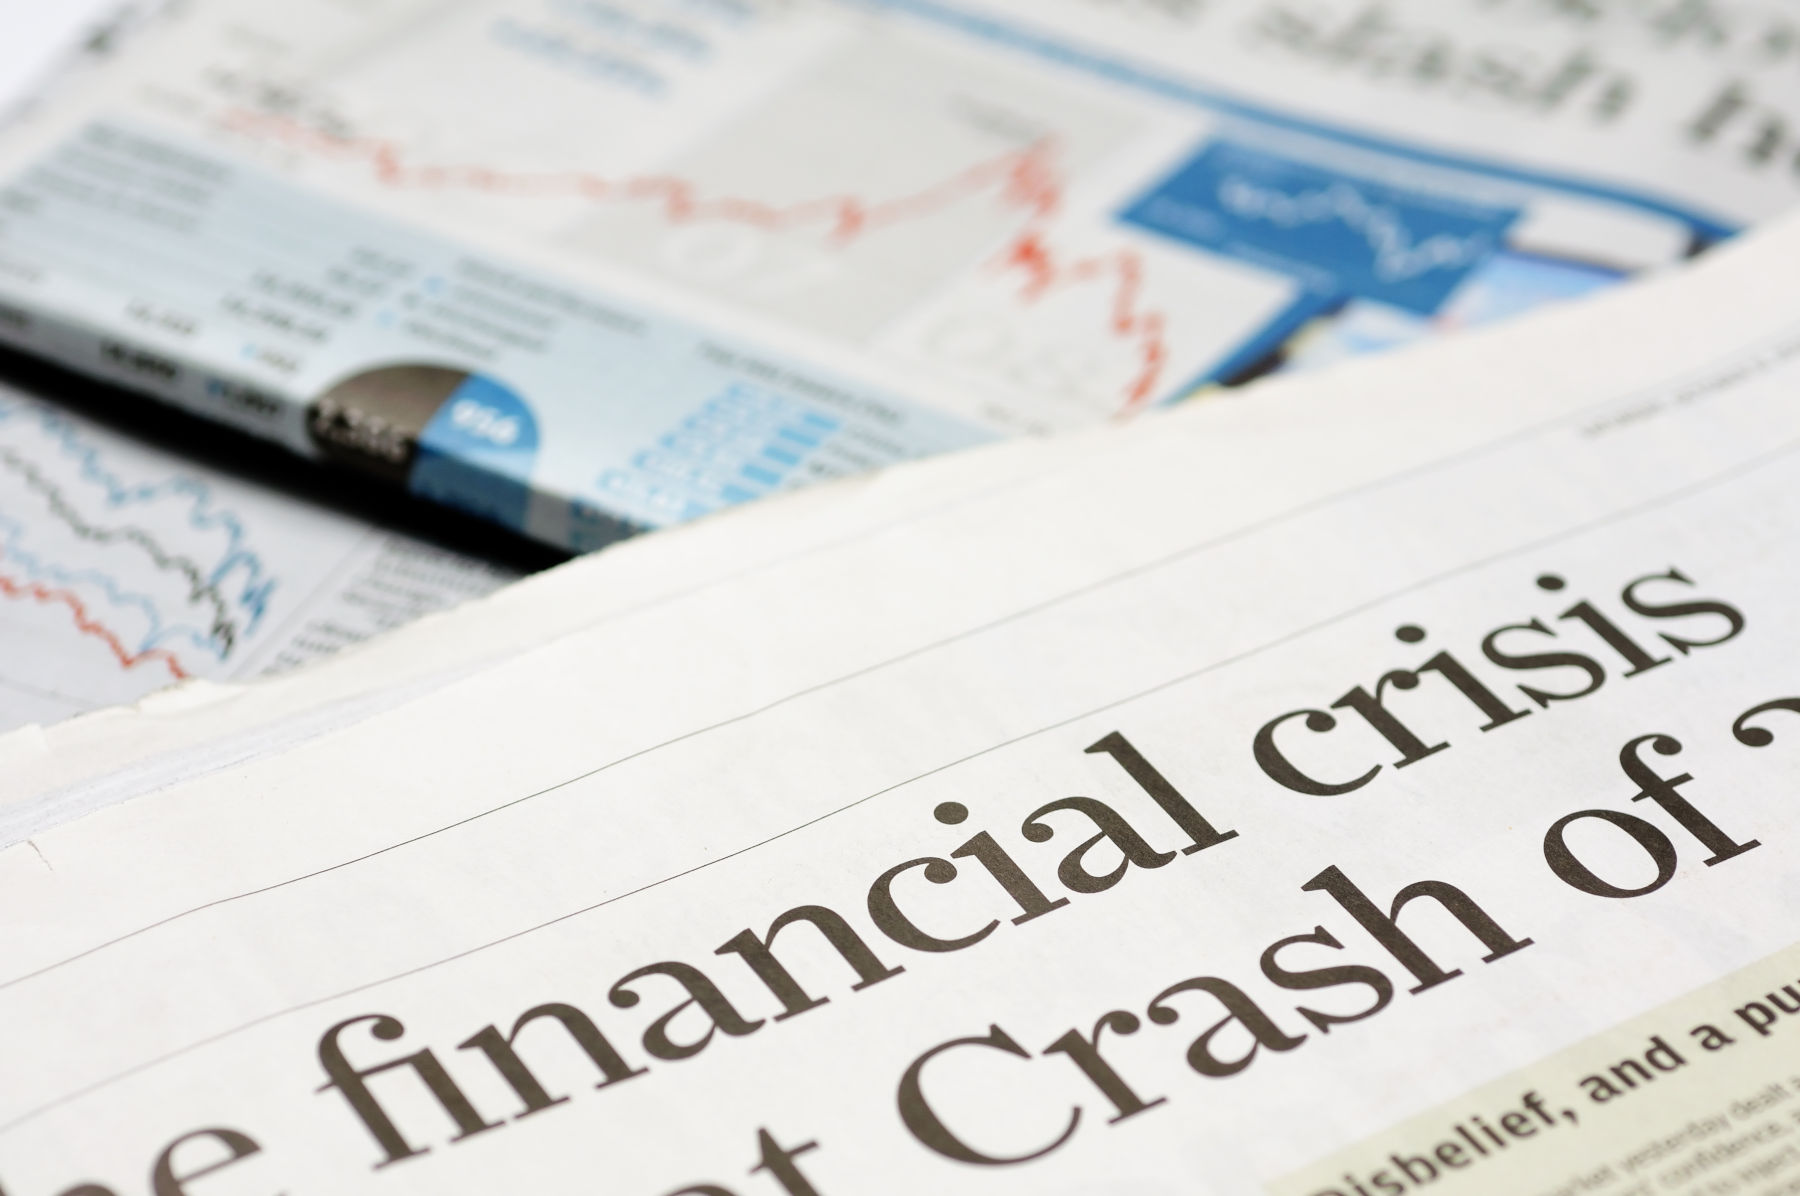 Whatever It Takes To Fix the Unprecedented Economic Crisis… Again and Again. Or How to See Past Bullshit to Find Your Own Financial Security.